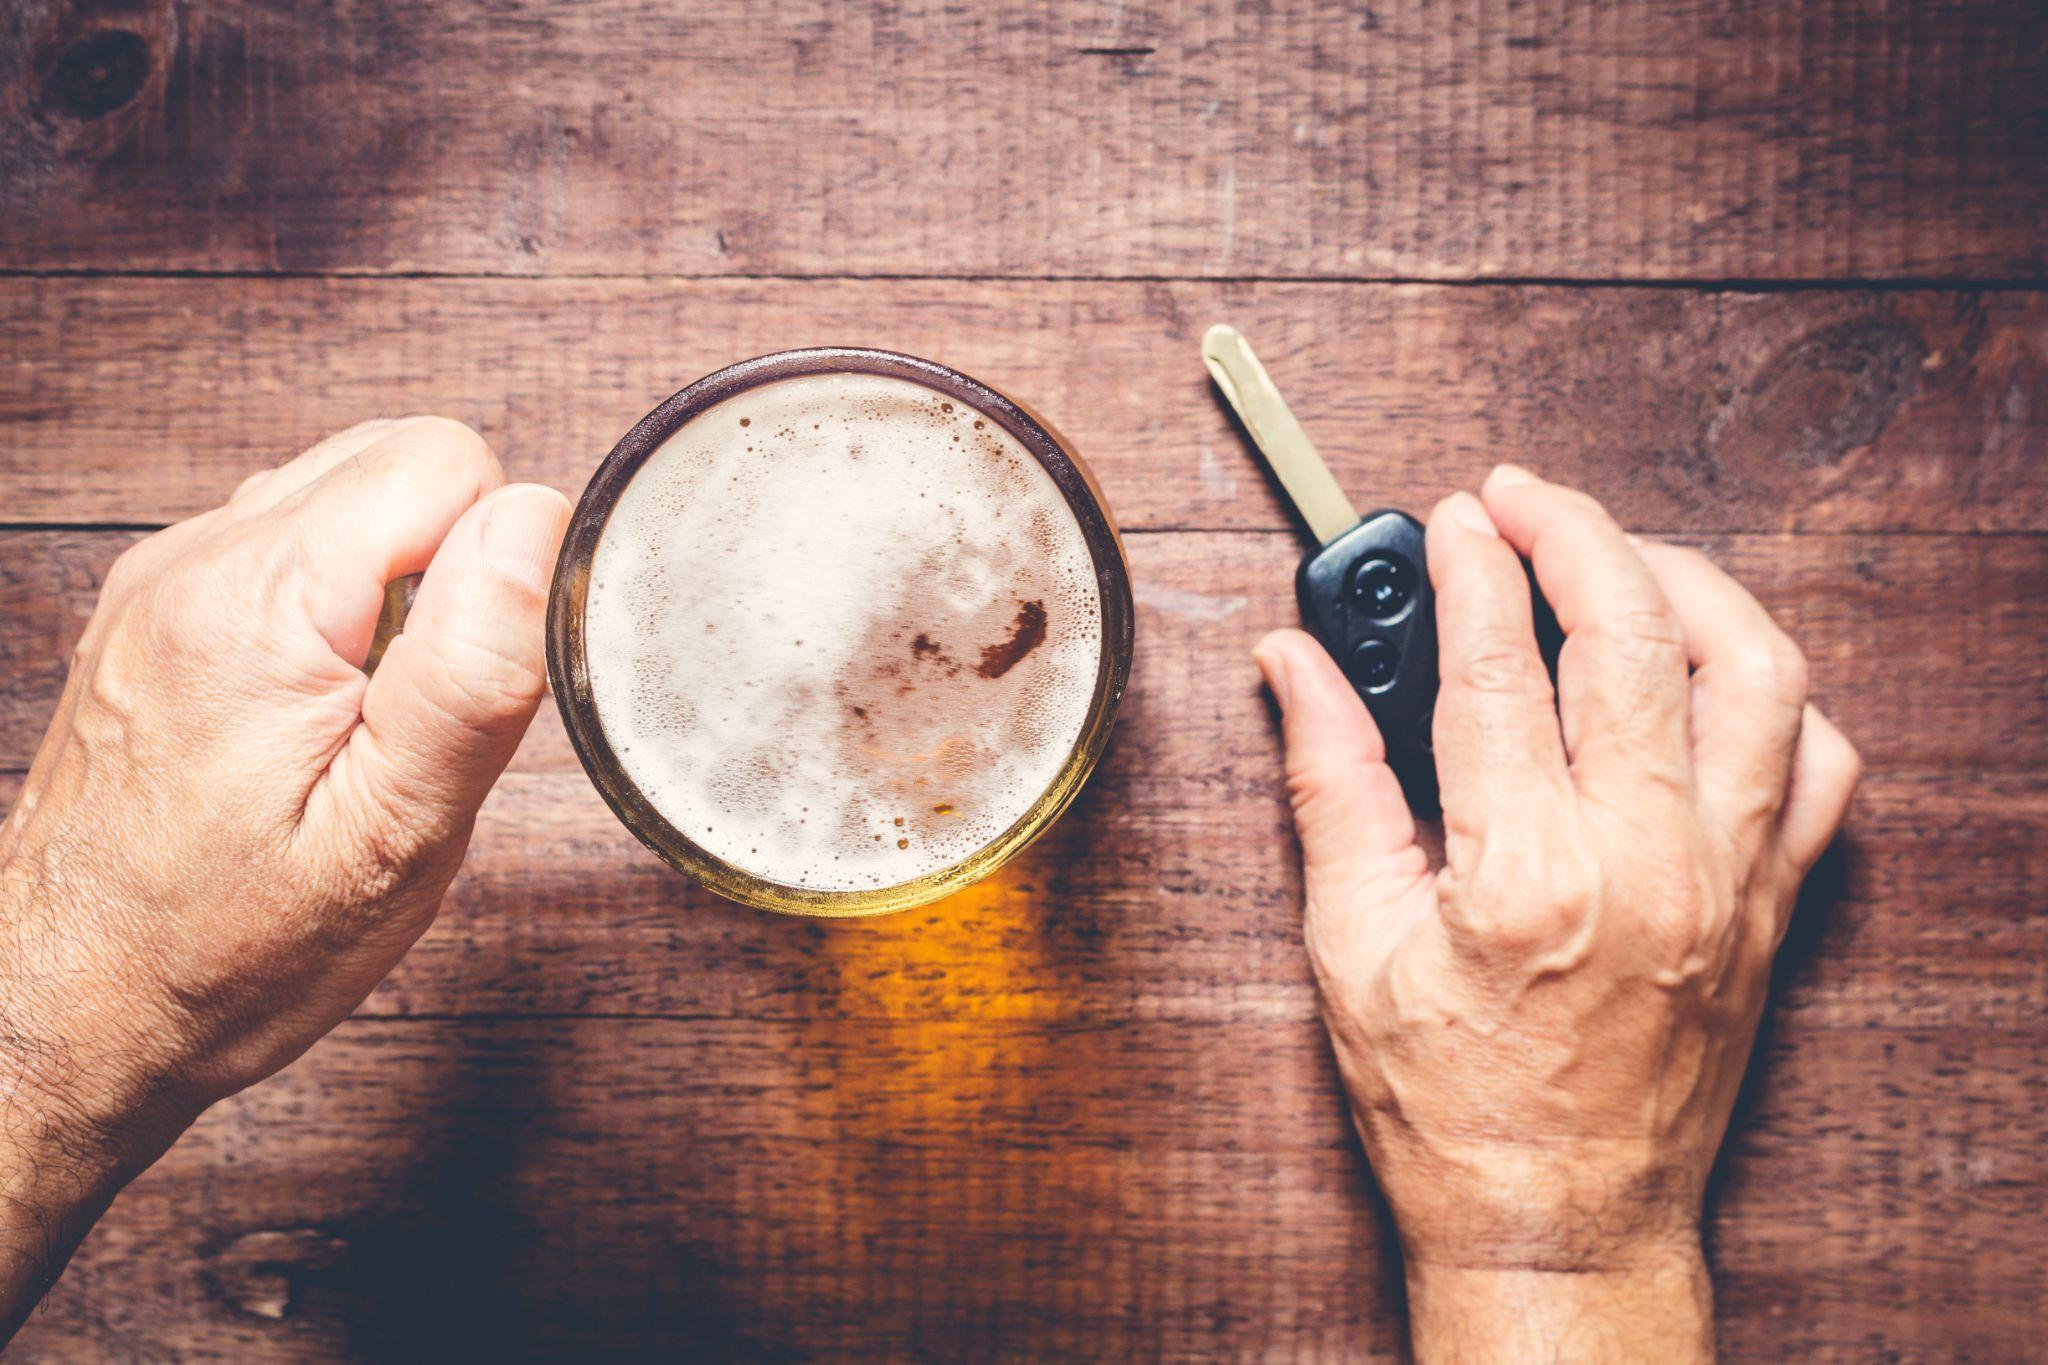 Does a DUI Arrest Mean You Have an Alcohol Addiction?